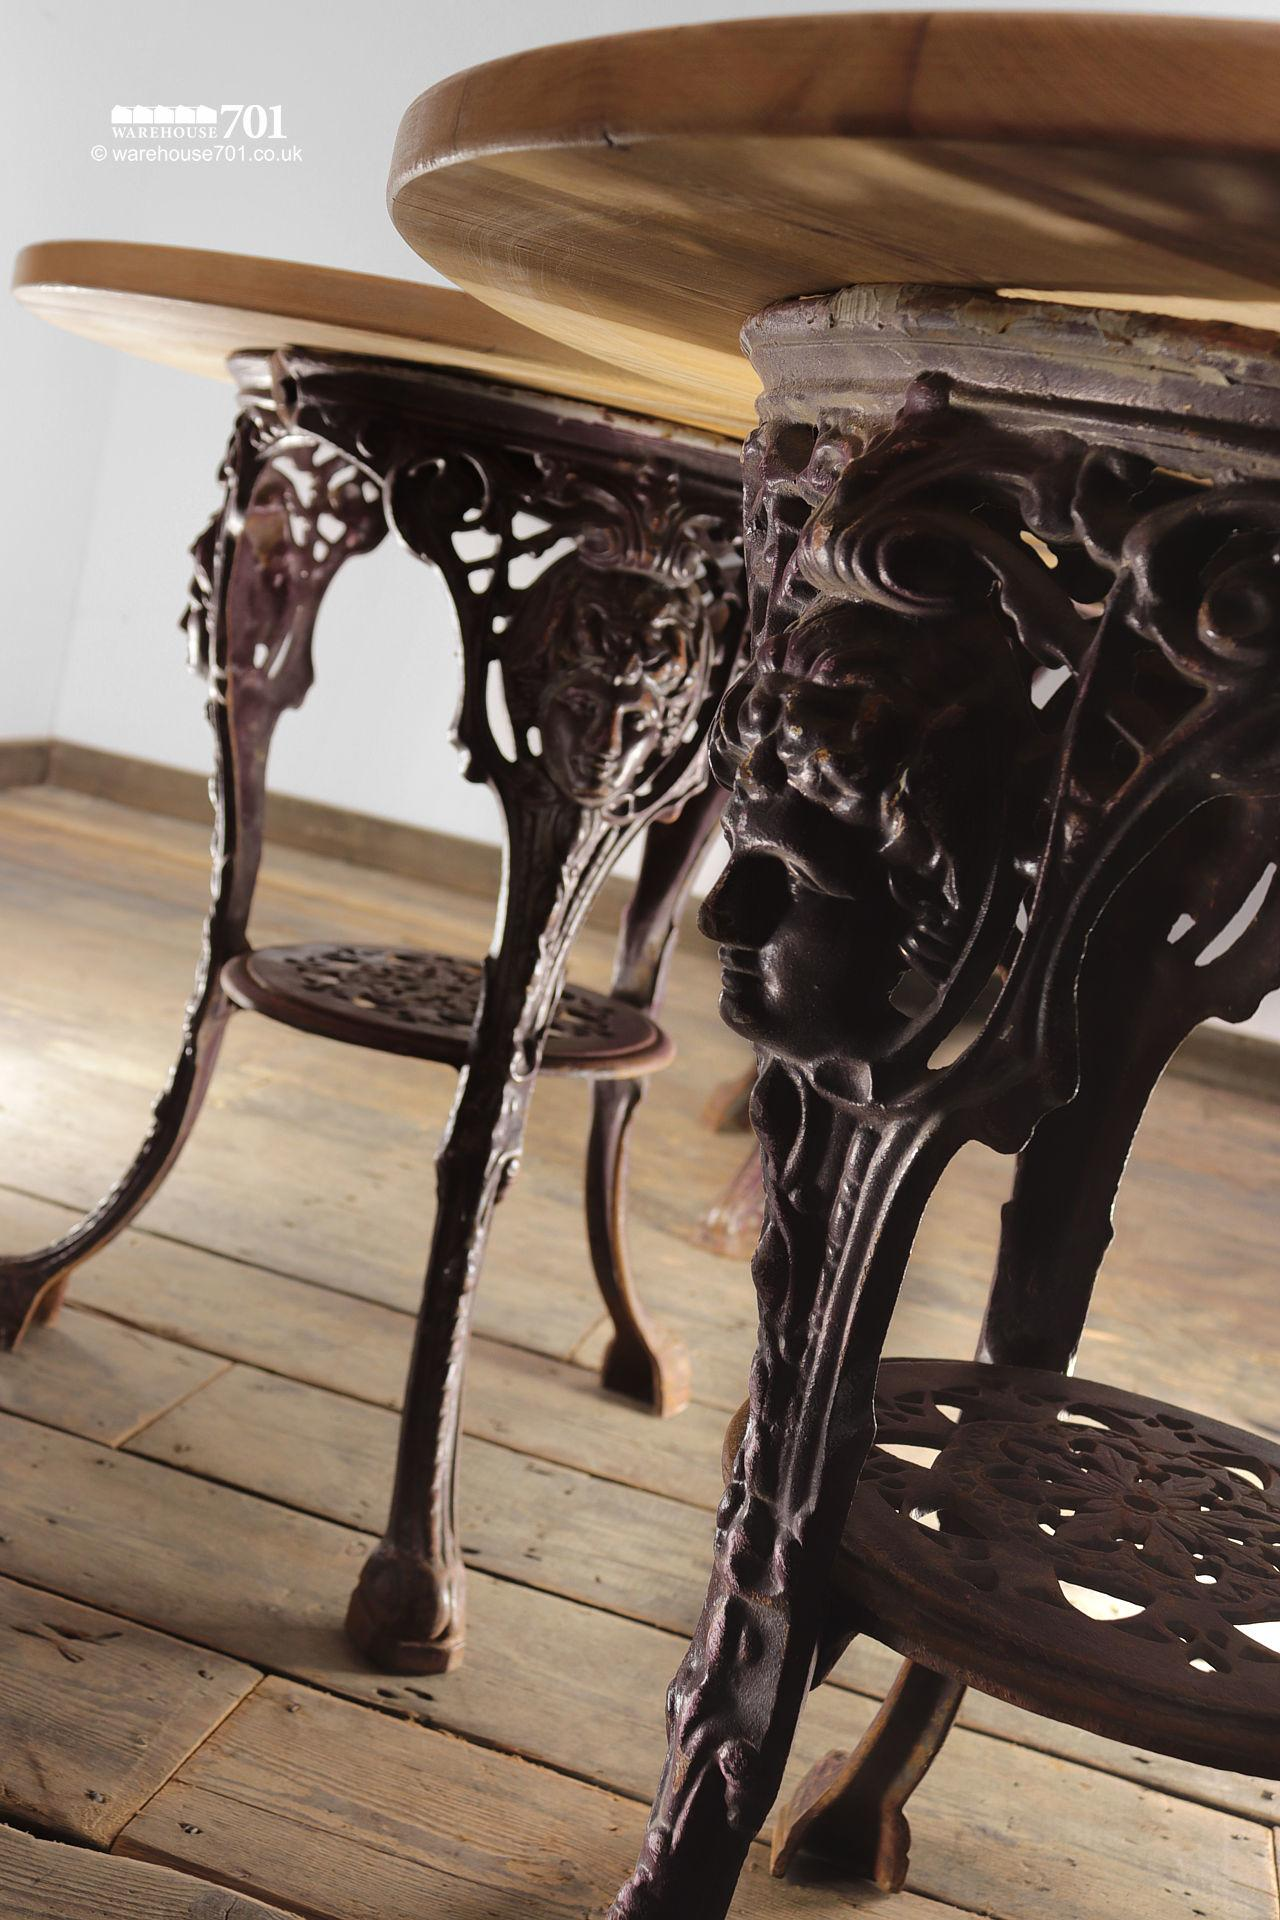 Ornate Cast Iron and Reclaimed Wood Cafe Tables #4